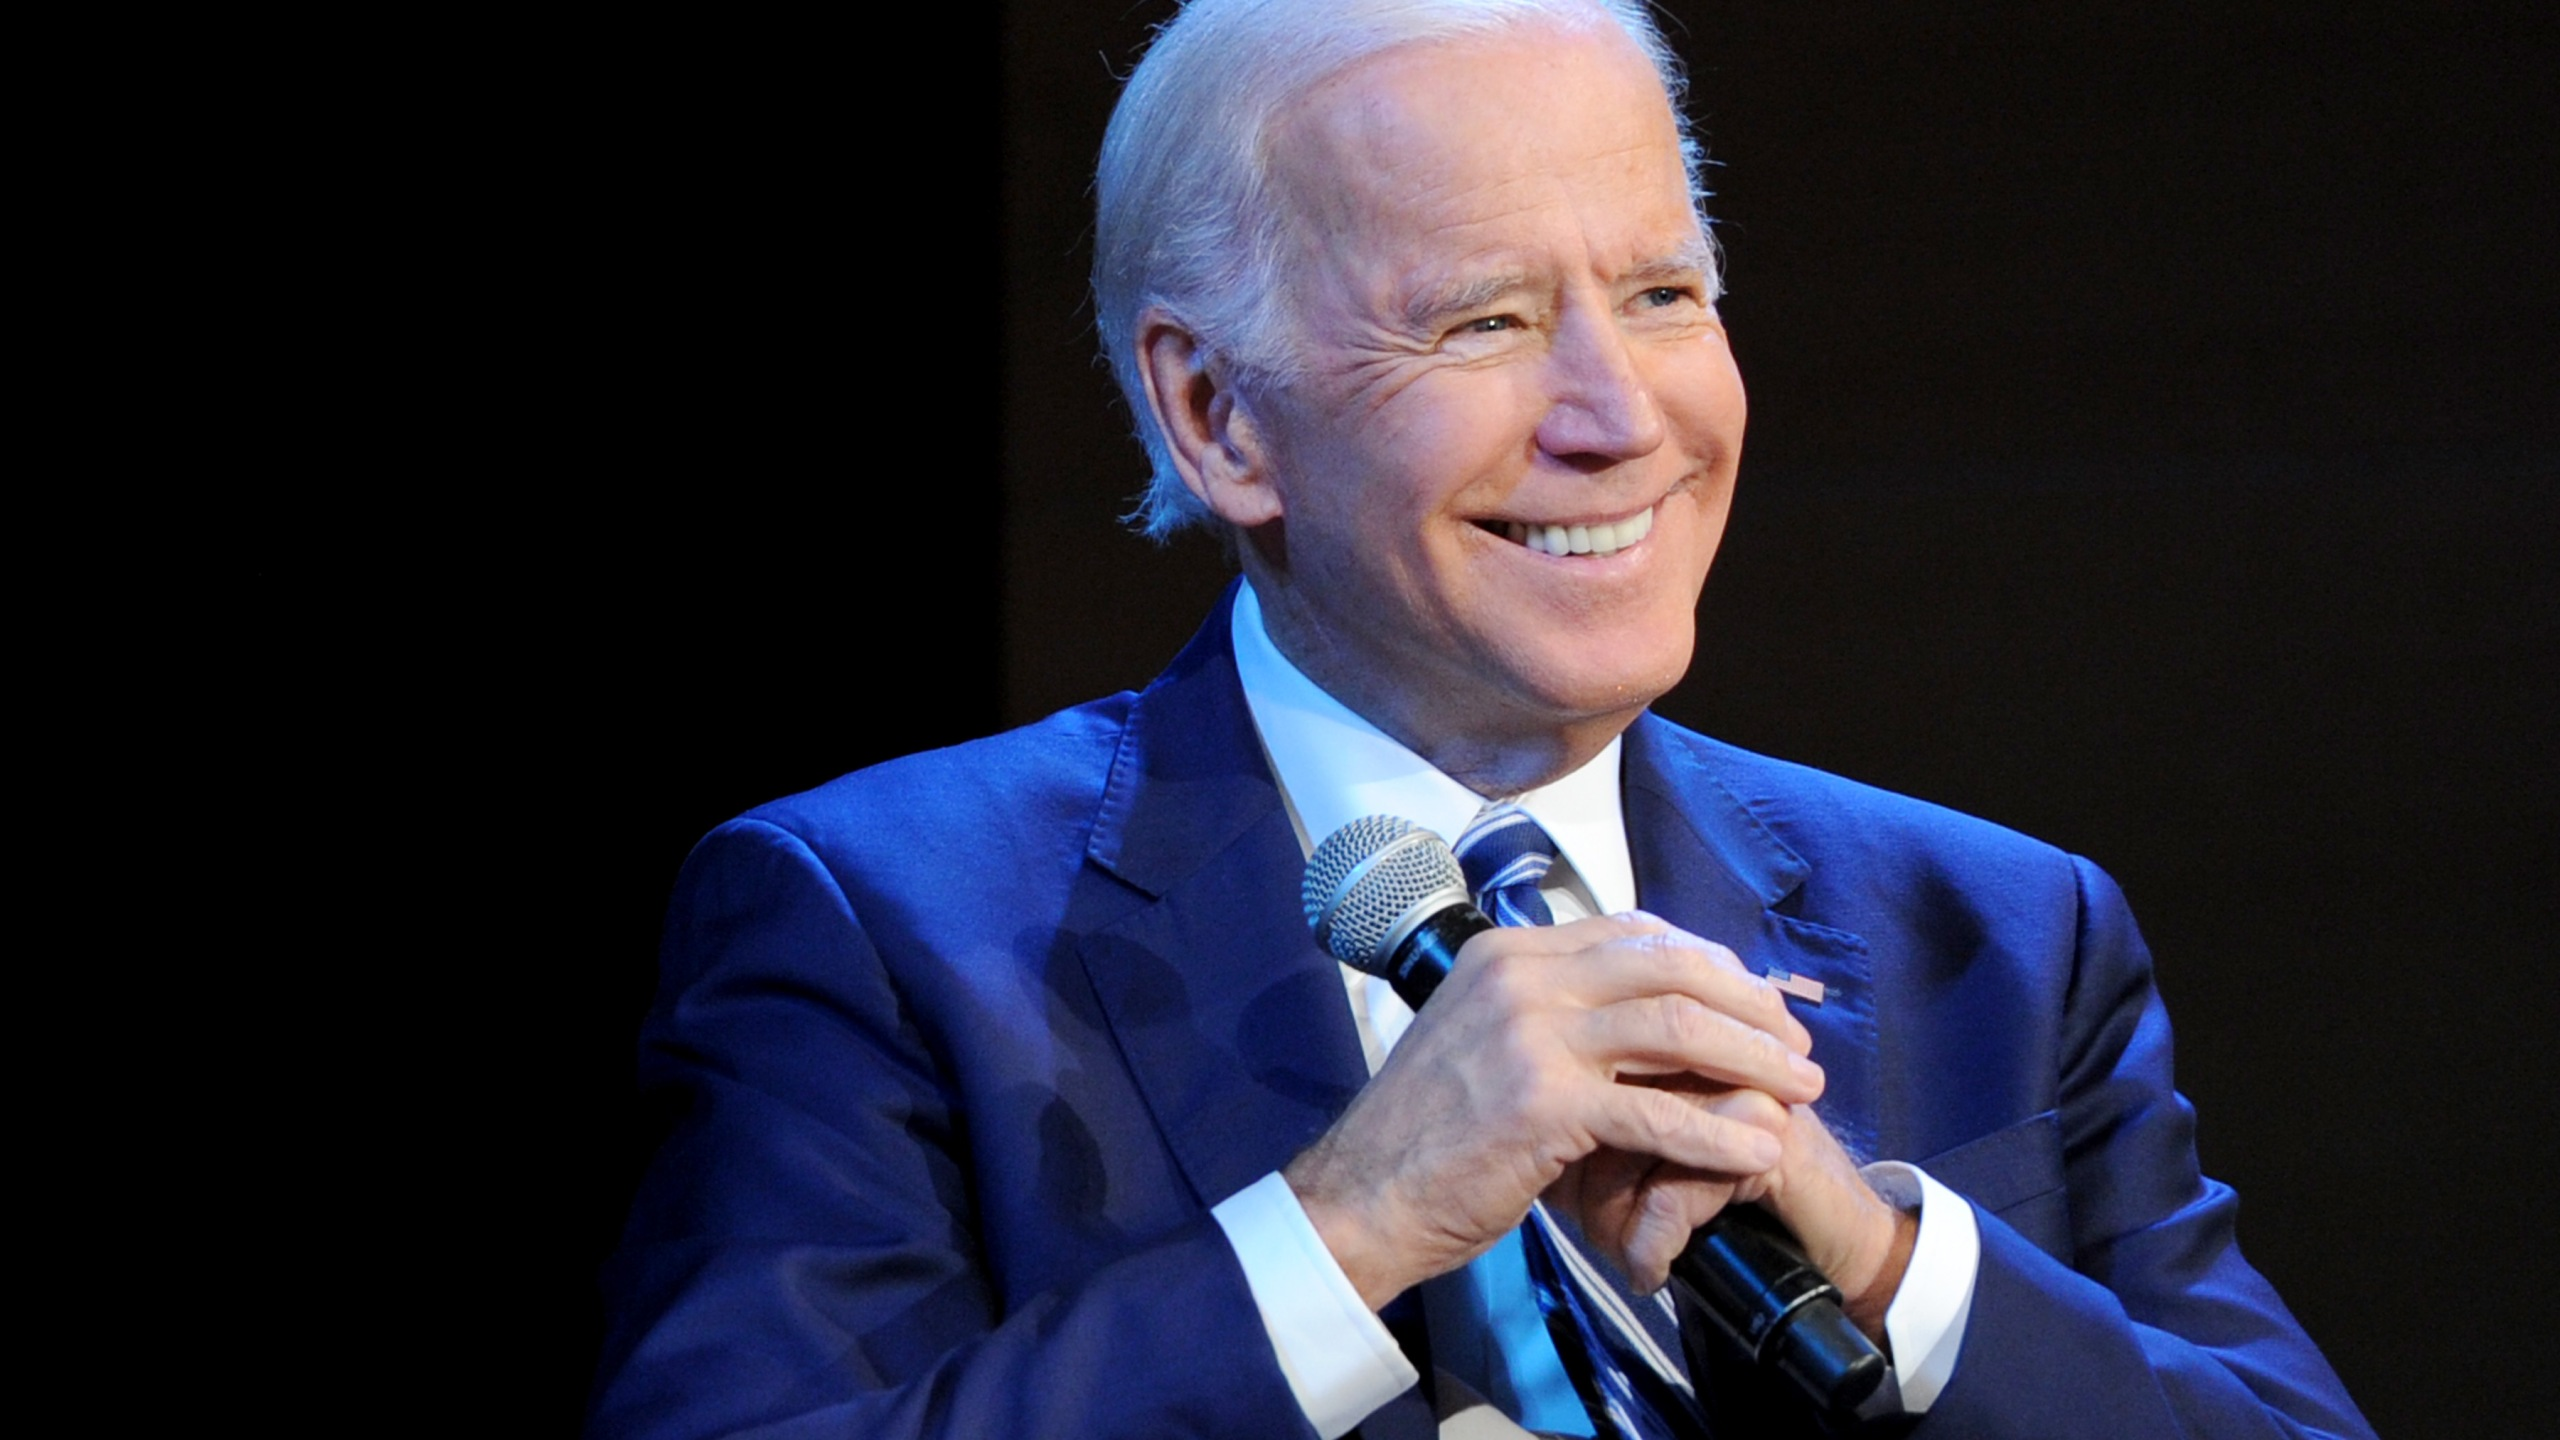 Former Vice President Joe Biden speaks onstage during Glamour Celebrates 2017 Women Of The Year Live Summit at Brooklyn Museum on November 13, 2017 in New York City. (Credit: Craig Barritt/Getty Images for Glamour)